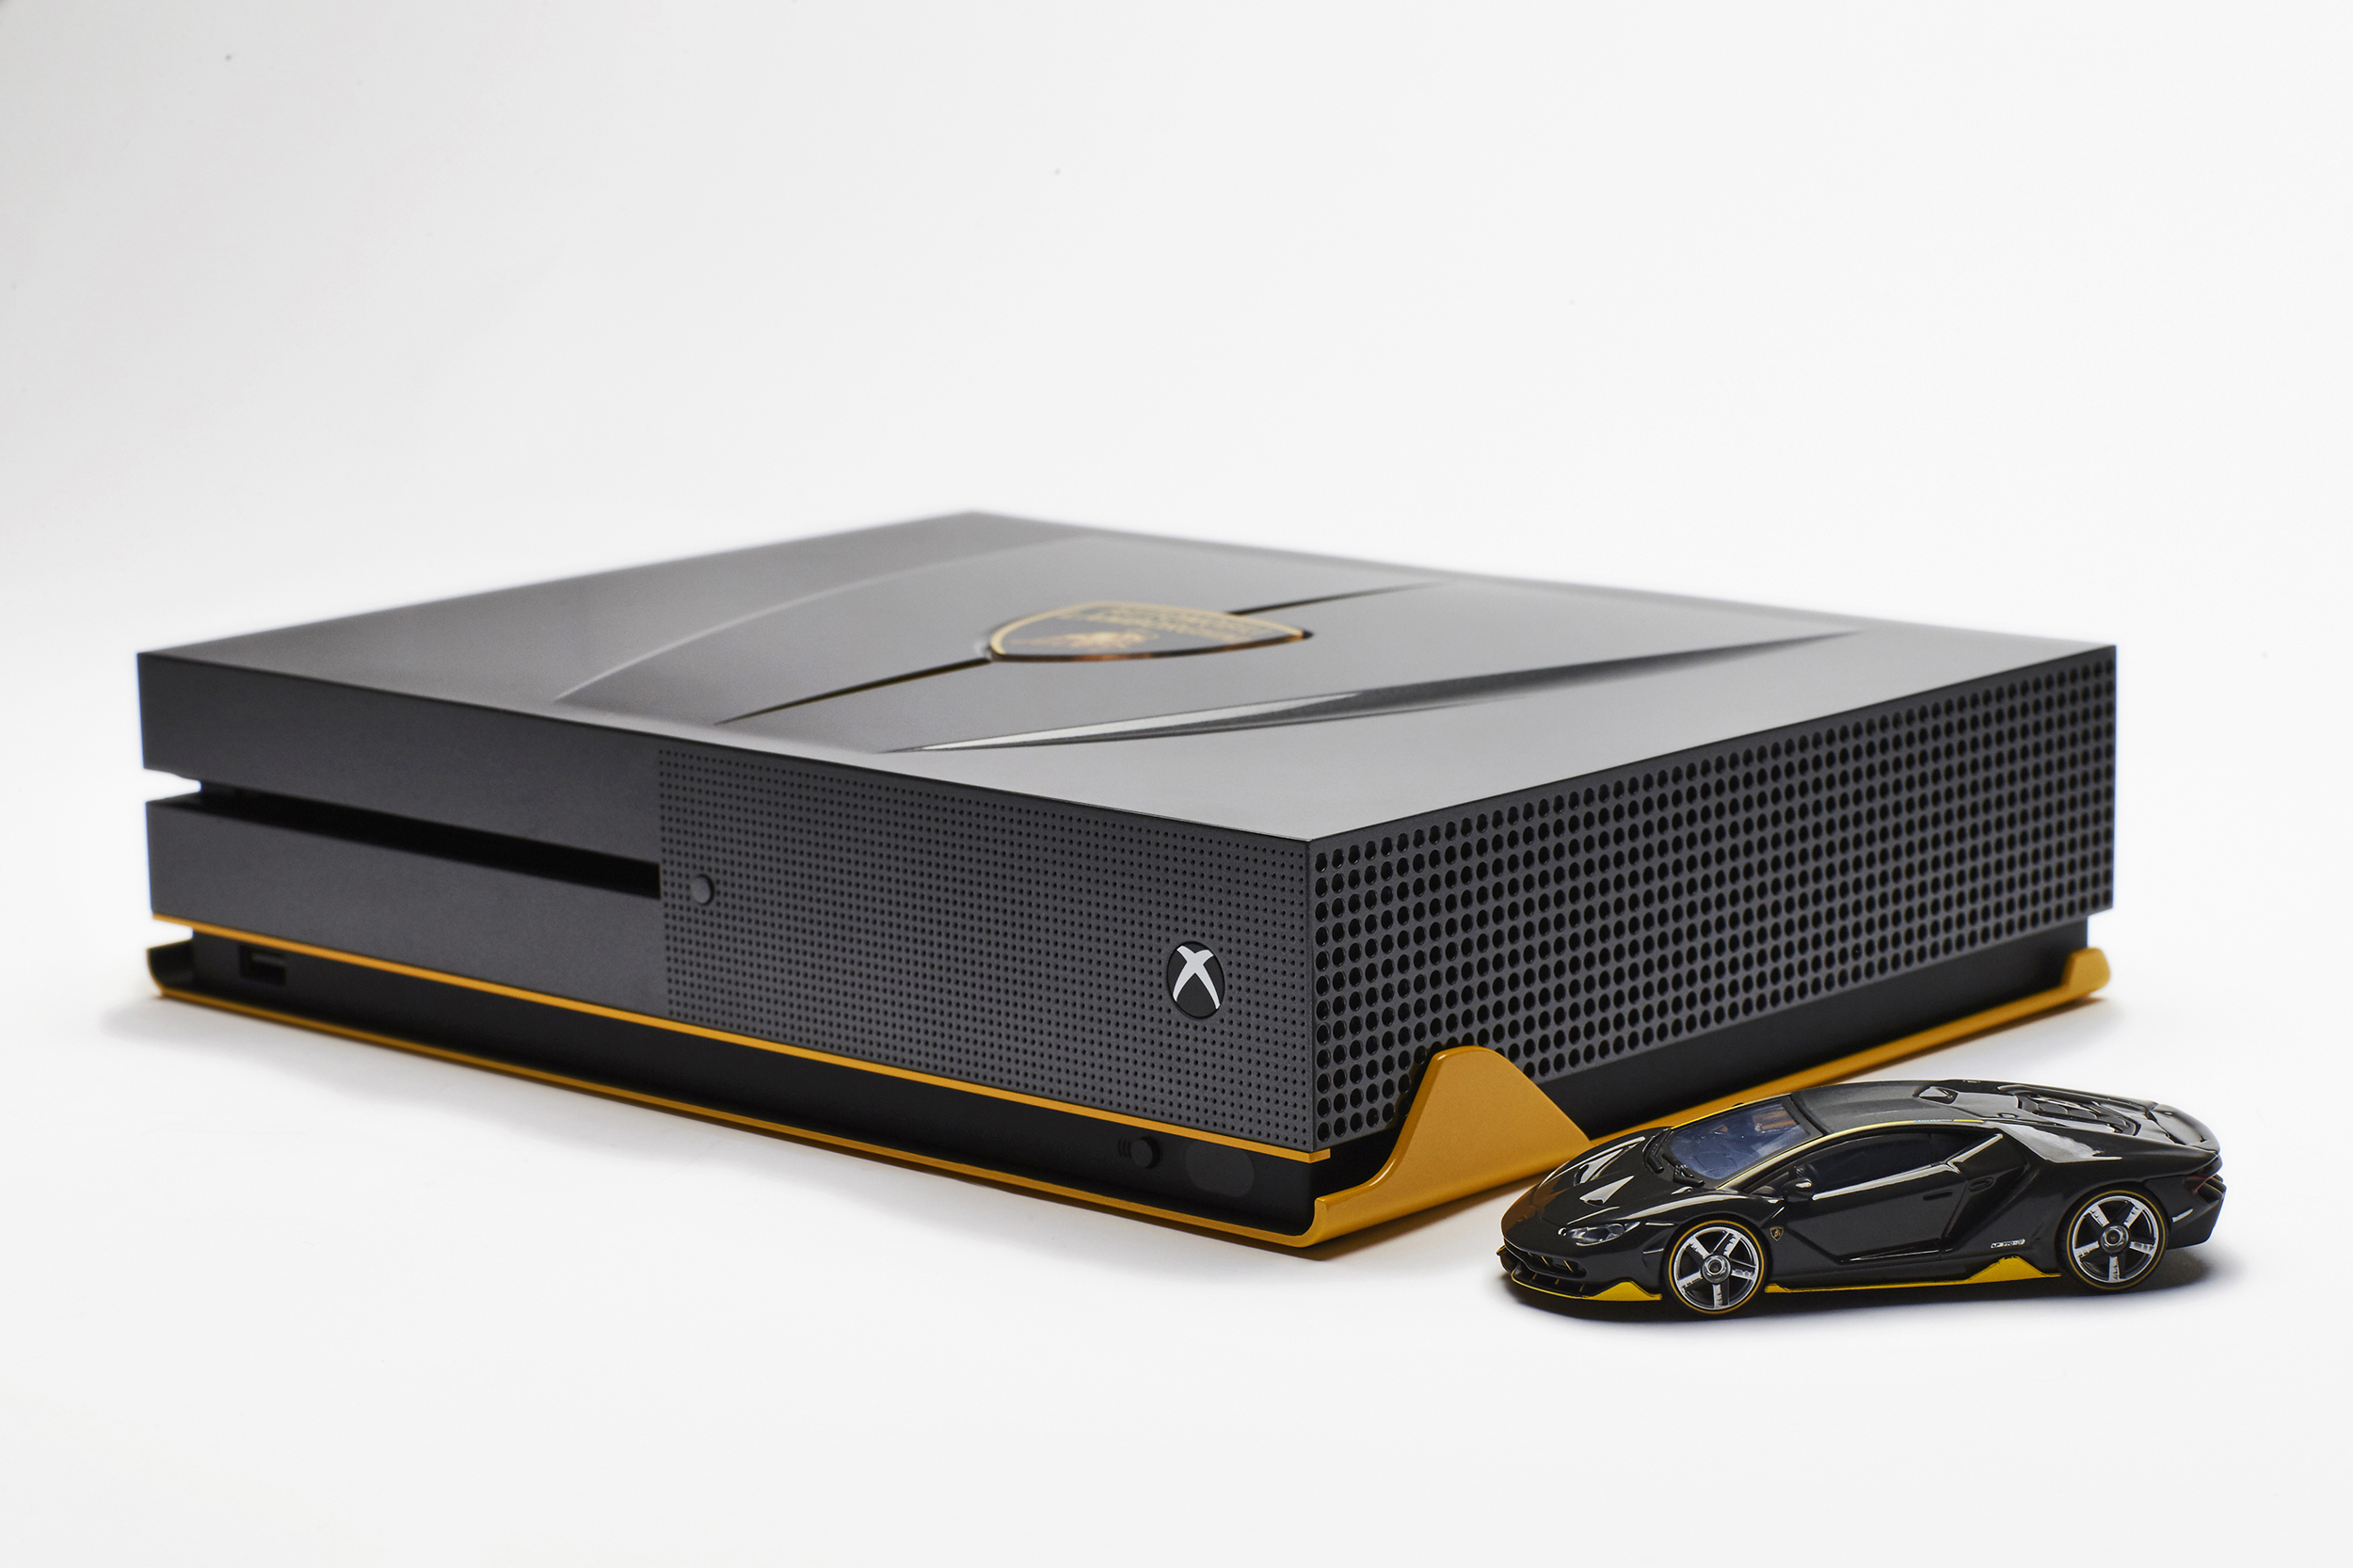 One Of A Kind Lamborghini Centenario Xbox One S Is Droolworthy Vg247